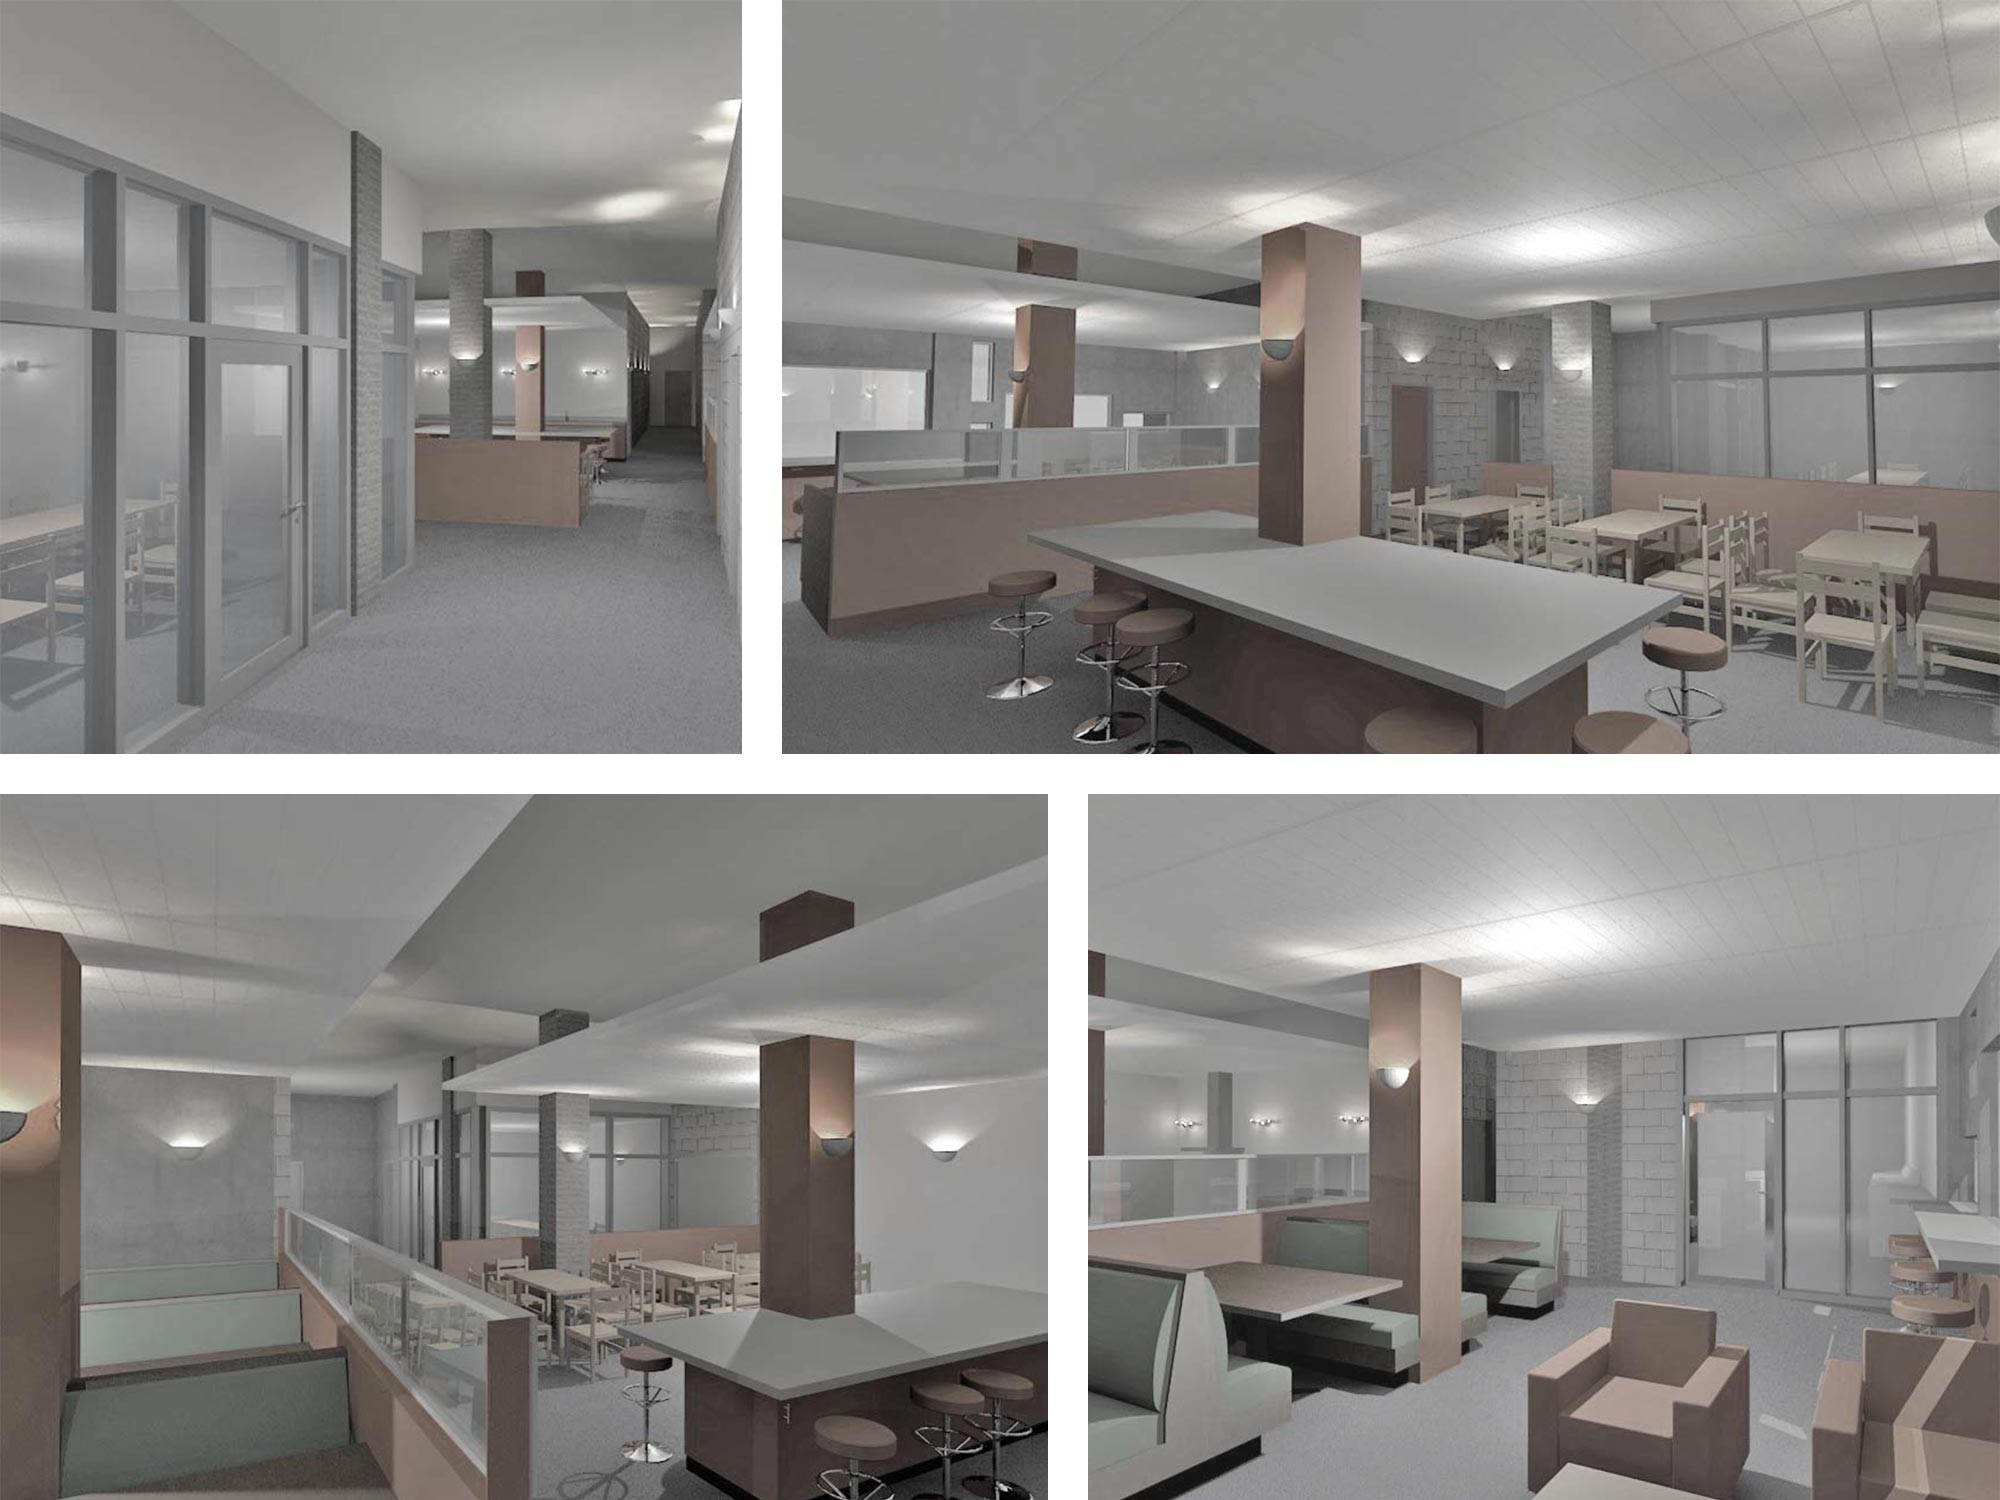 This project is designed to transform the dreary and utilitarian basement of a 1960's dormitory building into a vibrant, light-filled and fully-accessible center for student study and gathering.